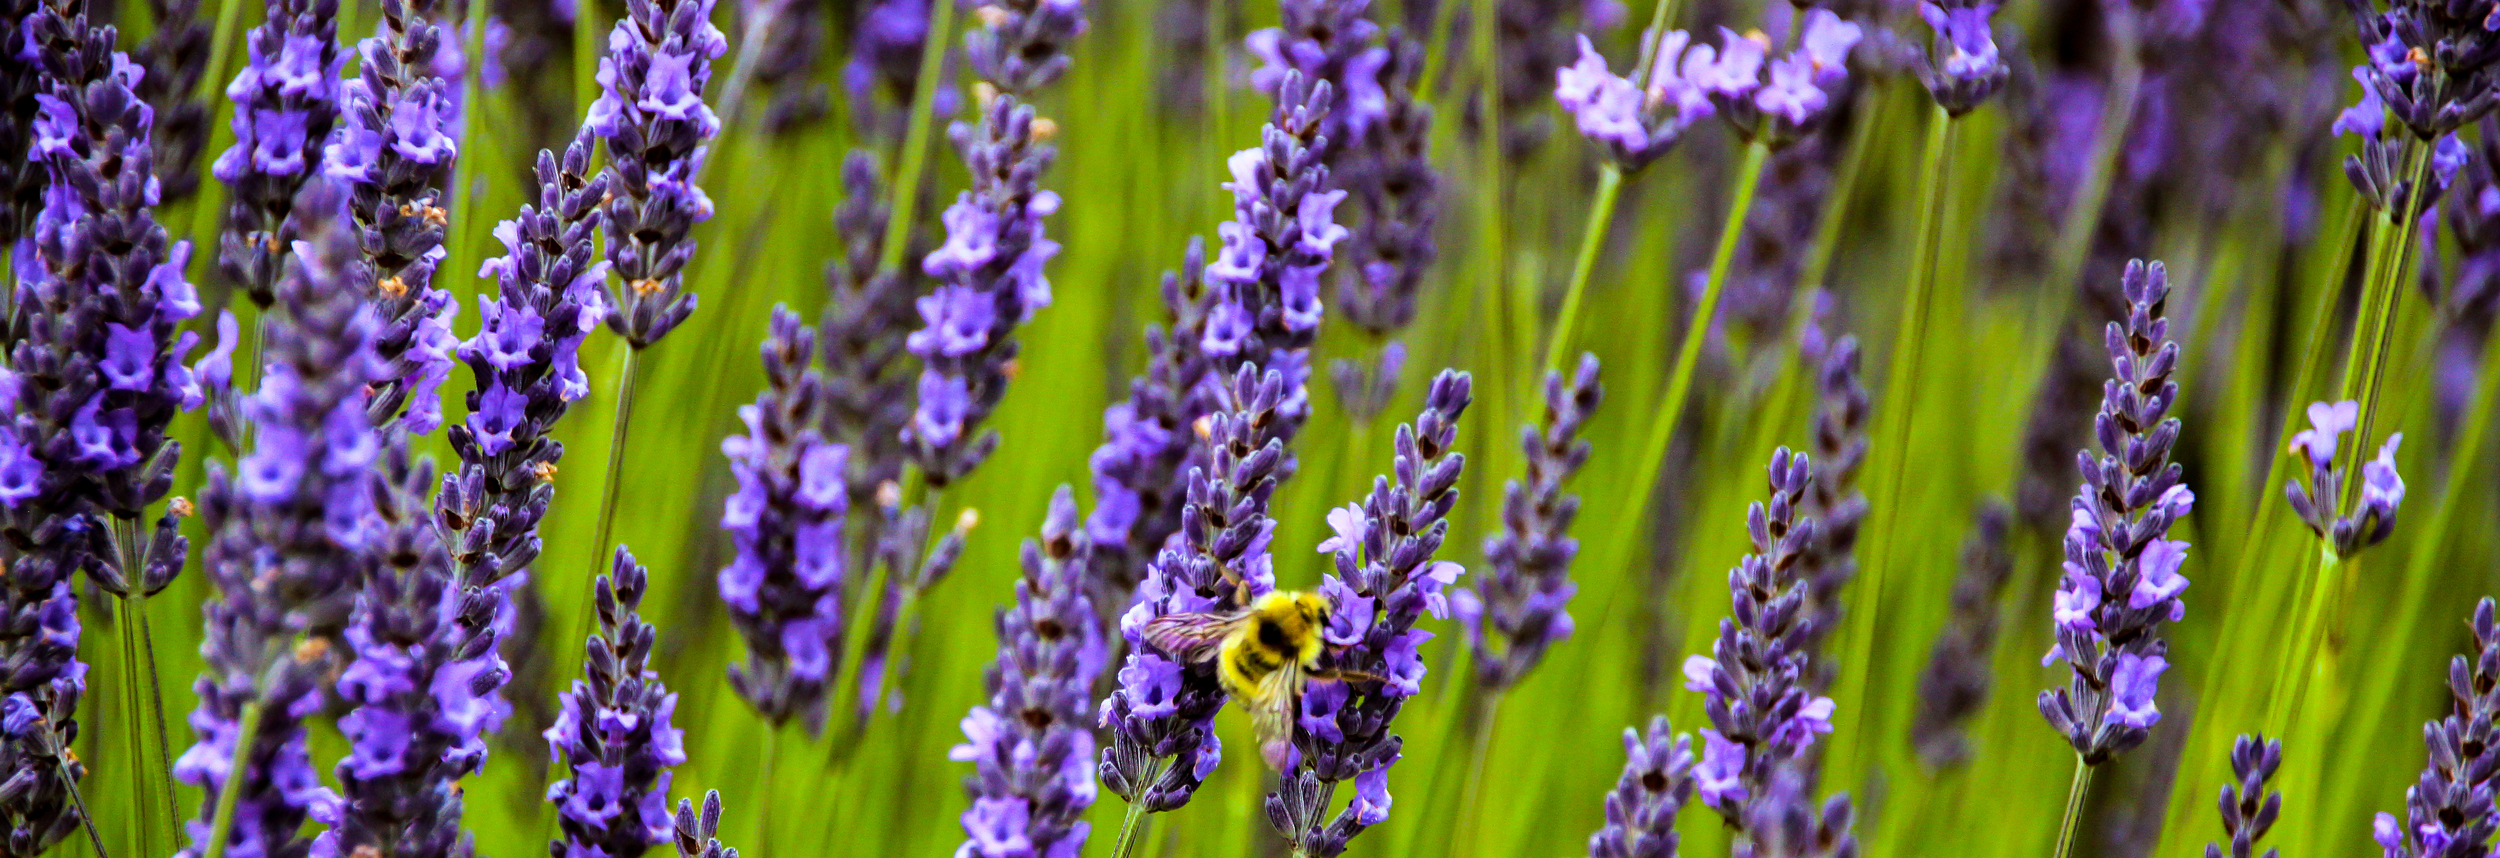 Notice that only some of the lavender is in focus. Flowers in front of and behind the bee are blurry. (Macro shot)